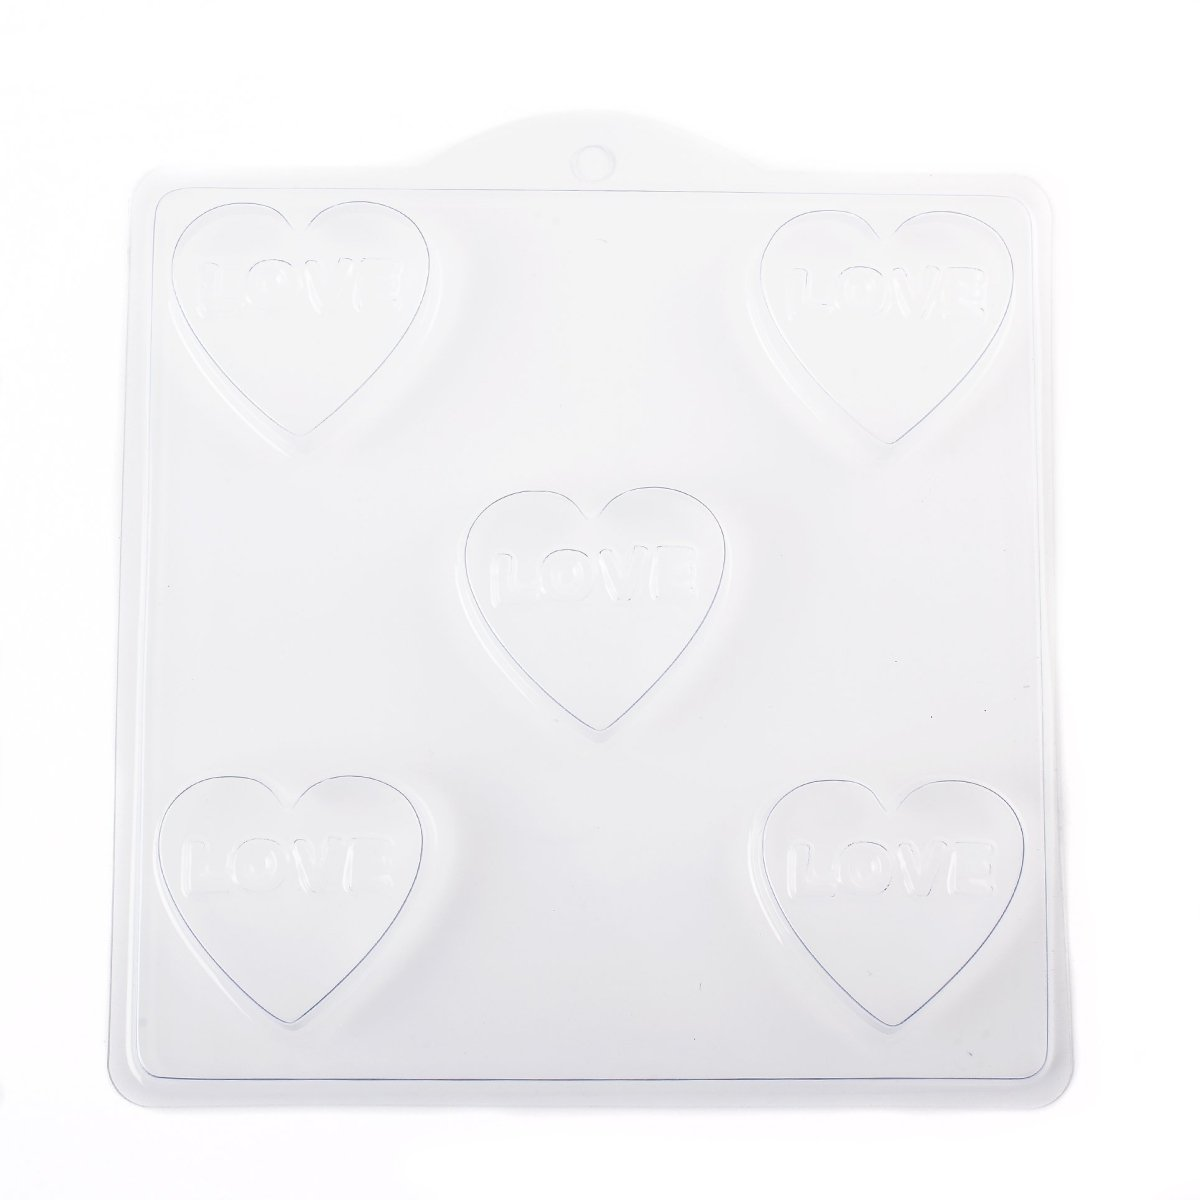 Heart with LOVE Soap/Bathbomb Mould 5 Cavity D08 - Mystic Moments UK